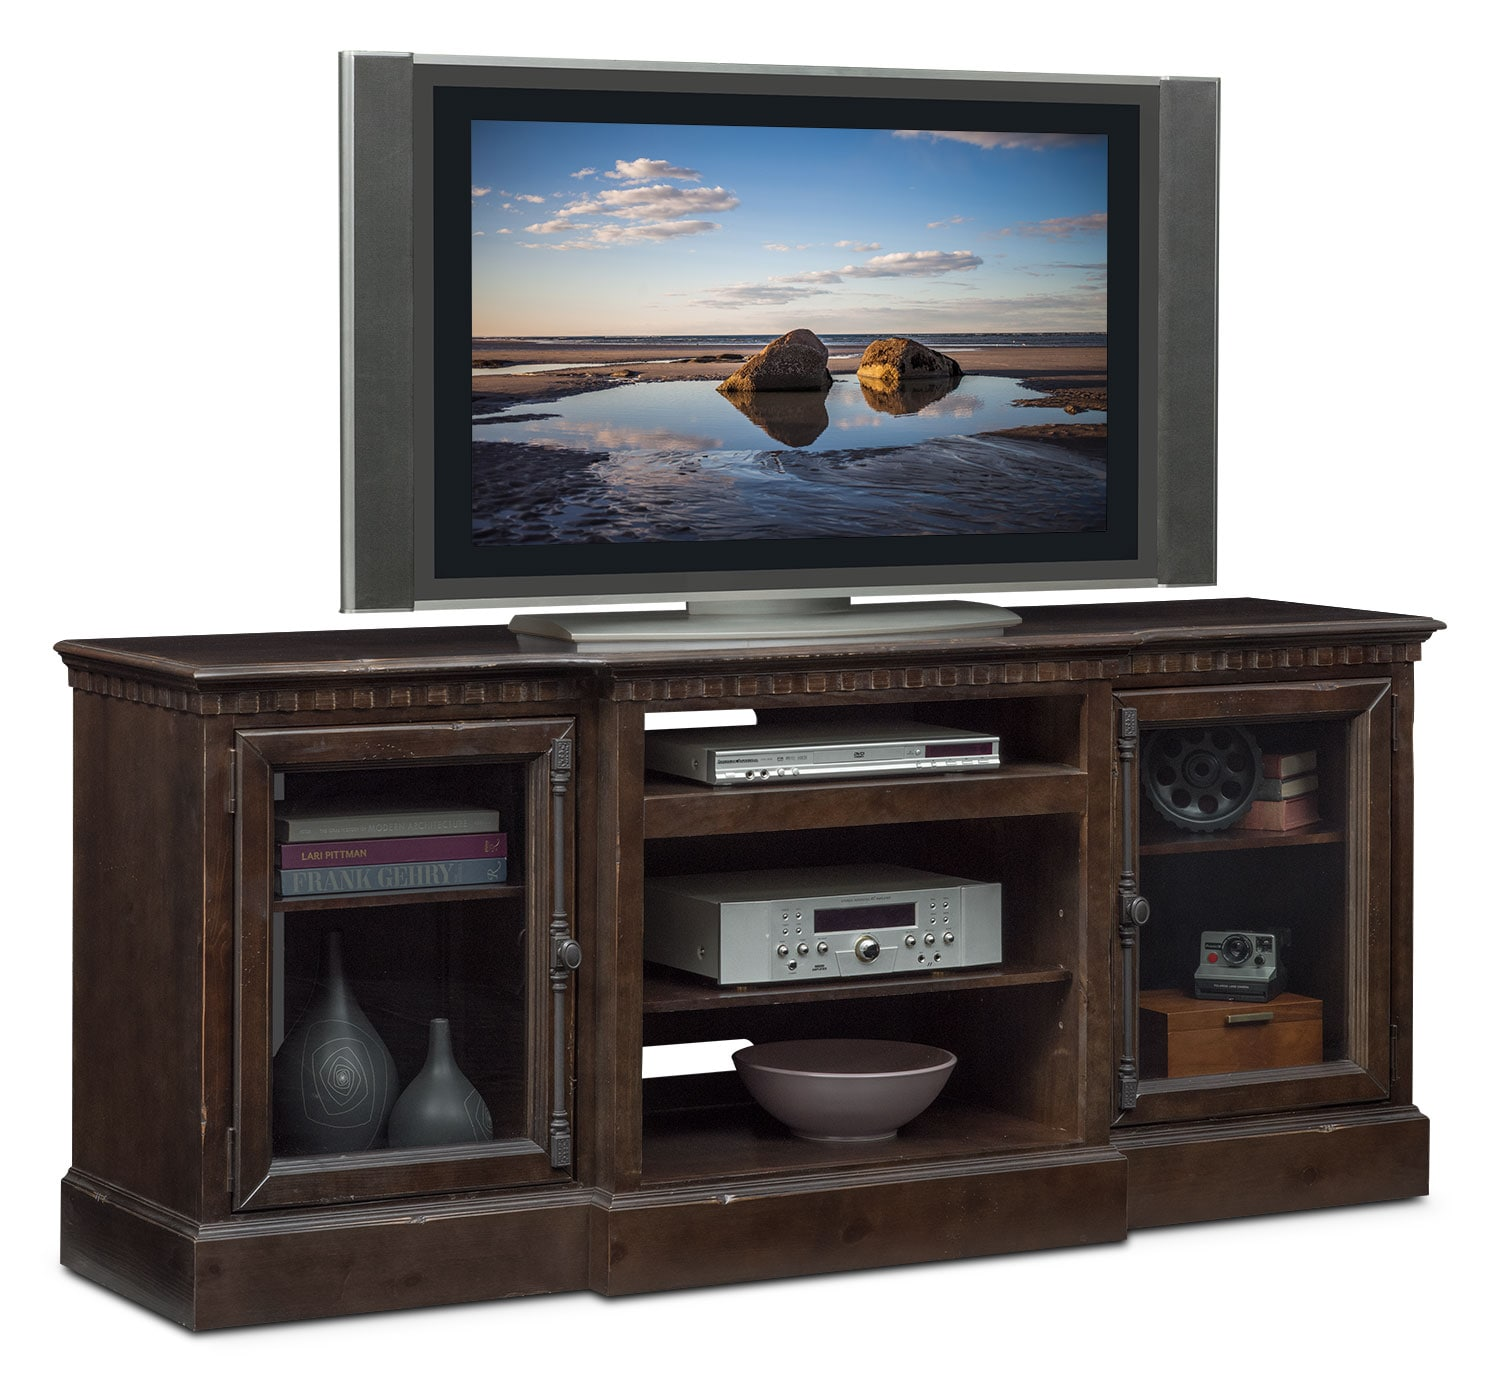 "Entertainment Furniture - Claridge 74"" Media Stand - Tobacco"